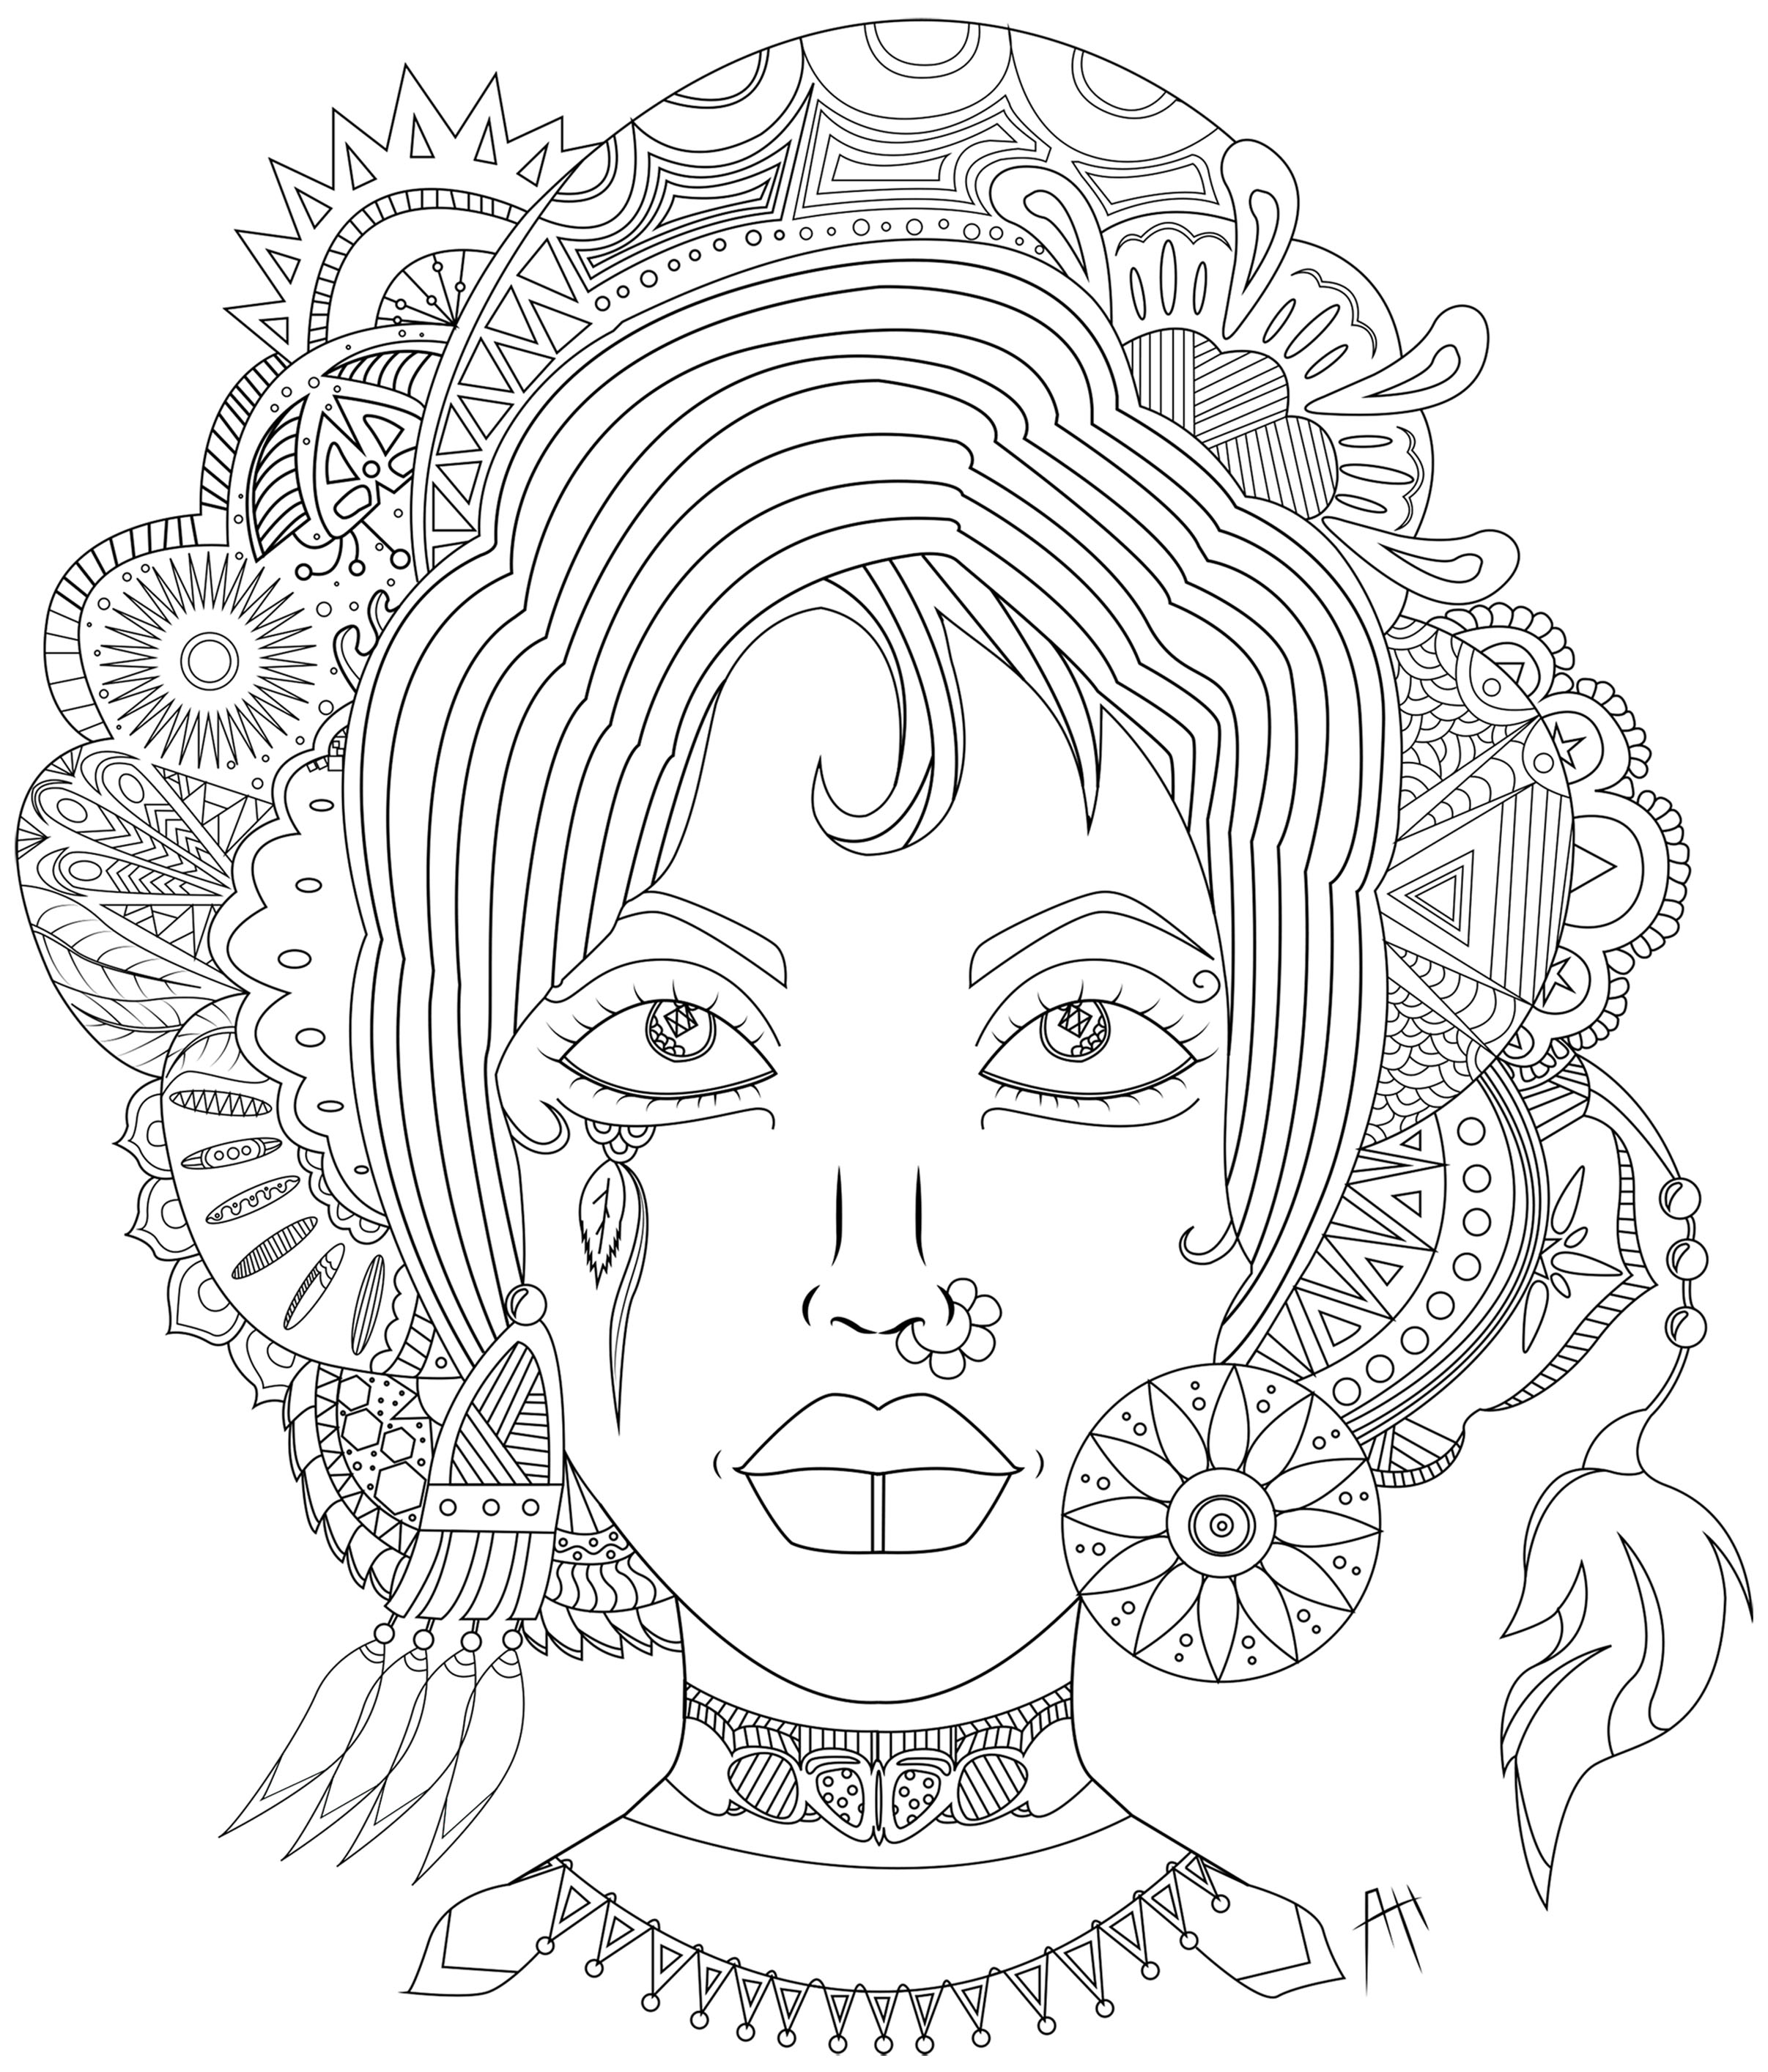 Woman with hairstyle made up of Mandalas